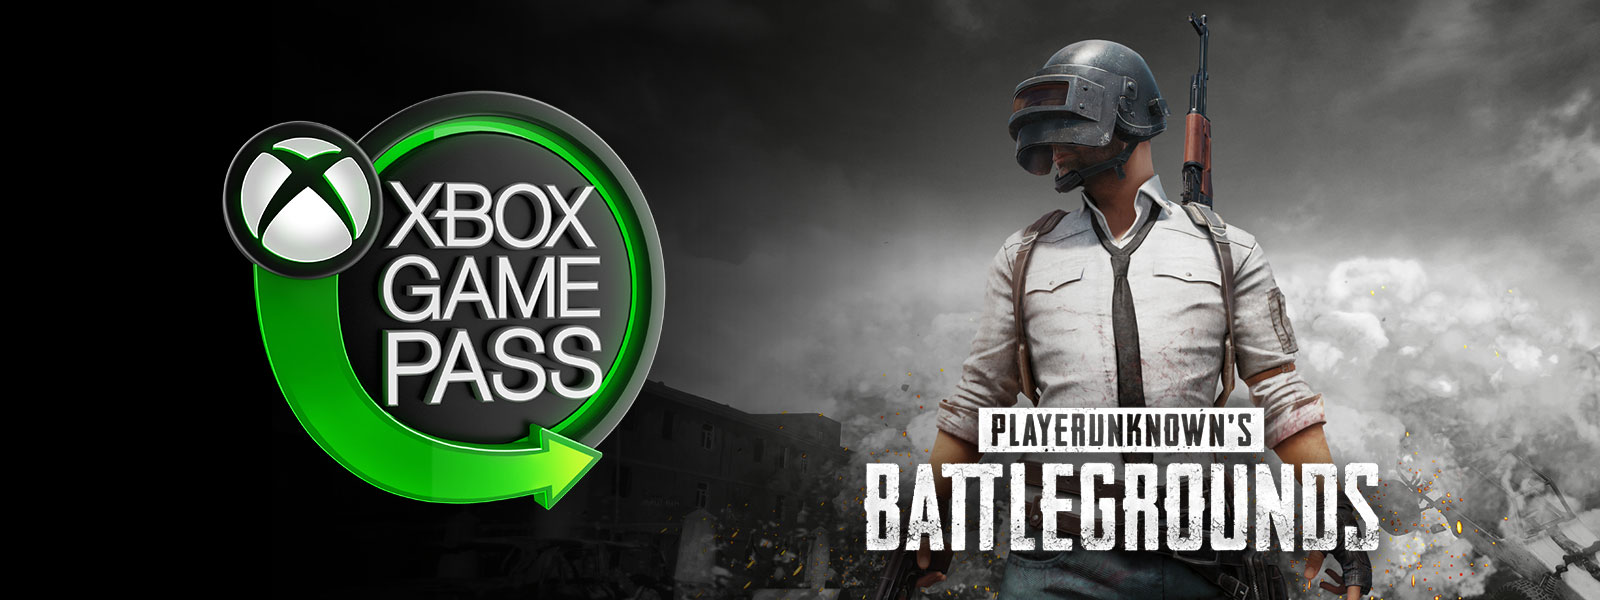 Xbox Game Pass logo, Playerunknown's Battlegrounds, Man wearing spetsnaz helmet and holding pistol stands in front of explosions